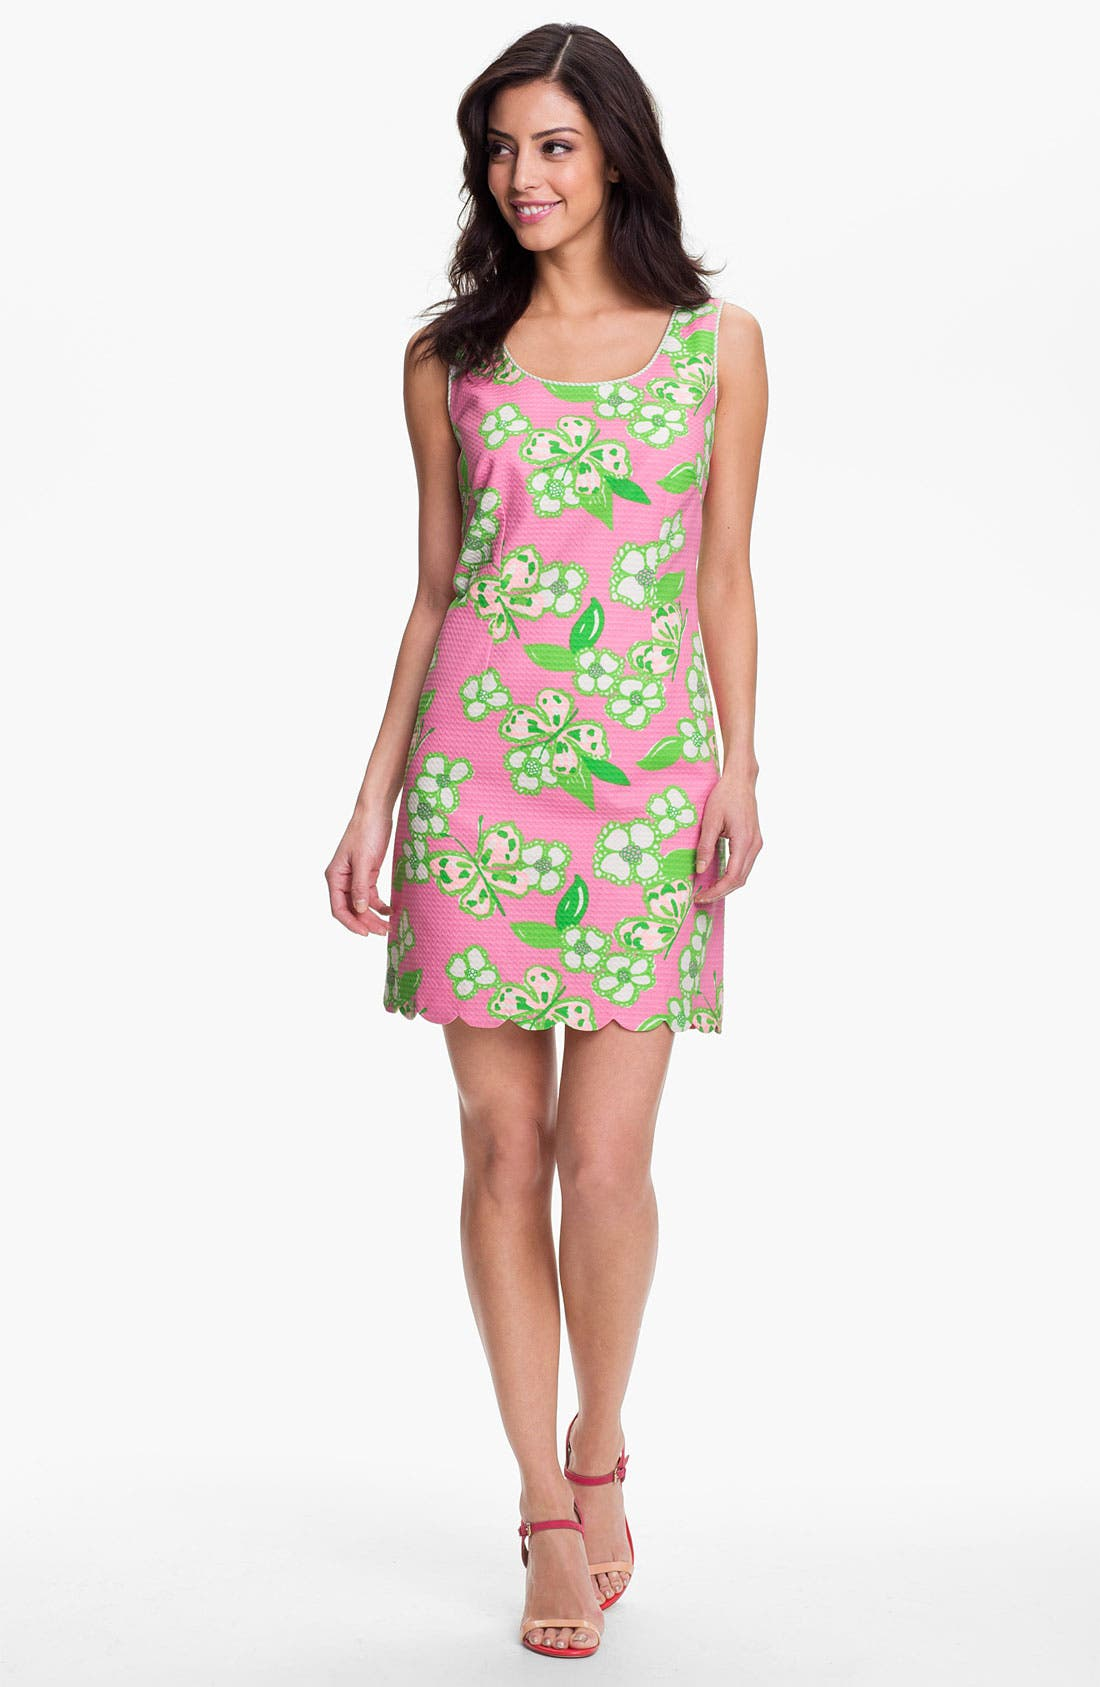 Main Image - Lilly Pulitzer® 'Nina' Print Jacquard Cotton Dress